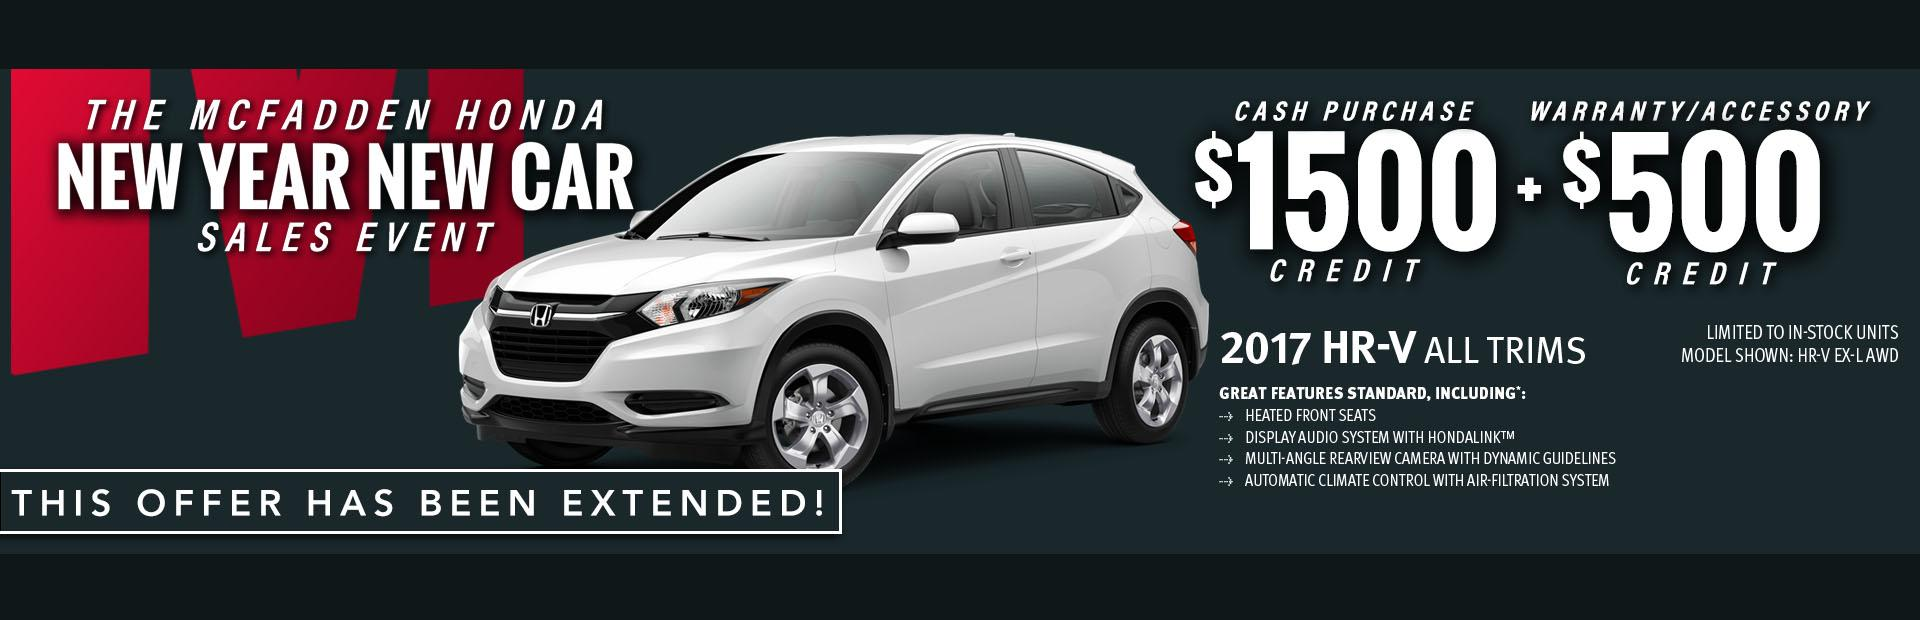 All Inventory - Approved NYNCE - HR-V